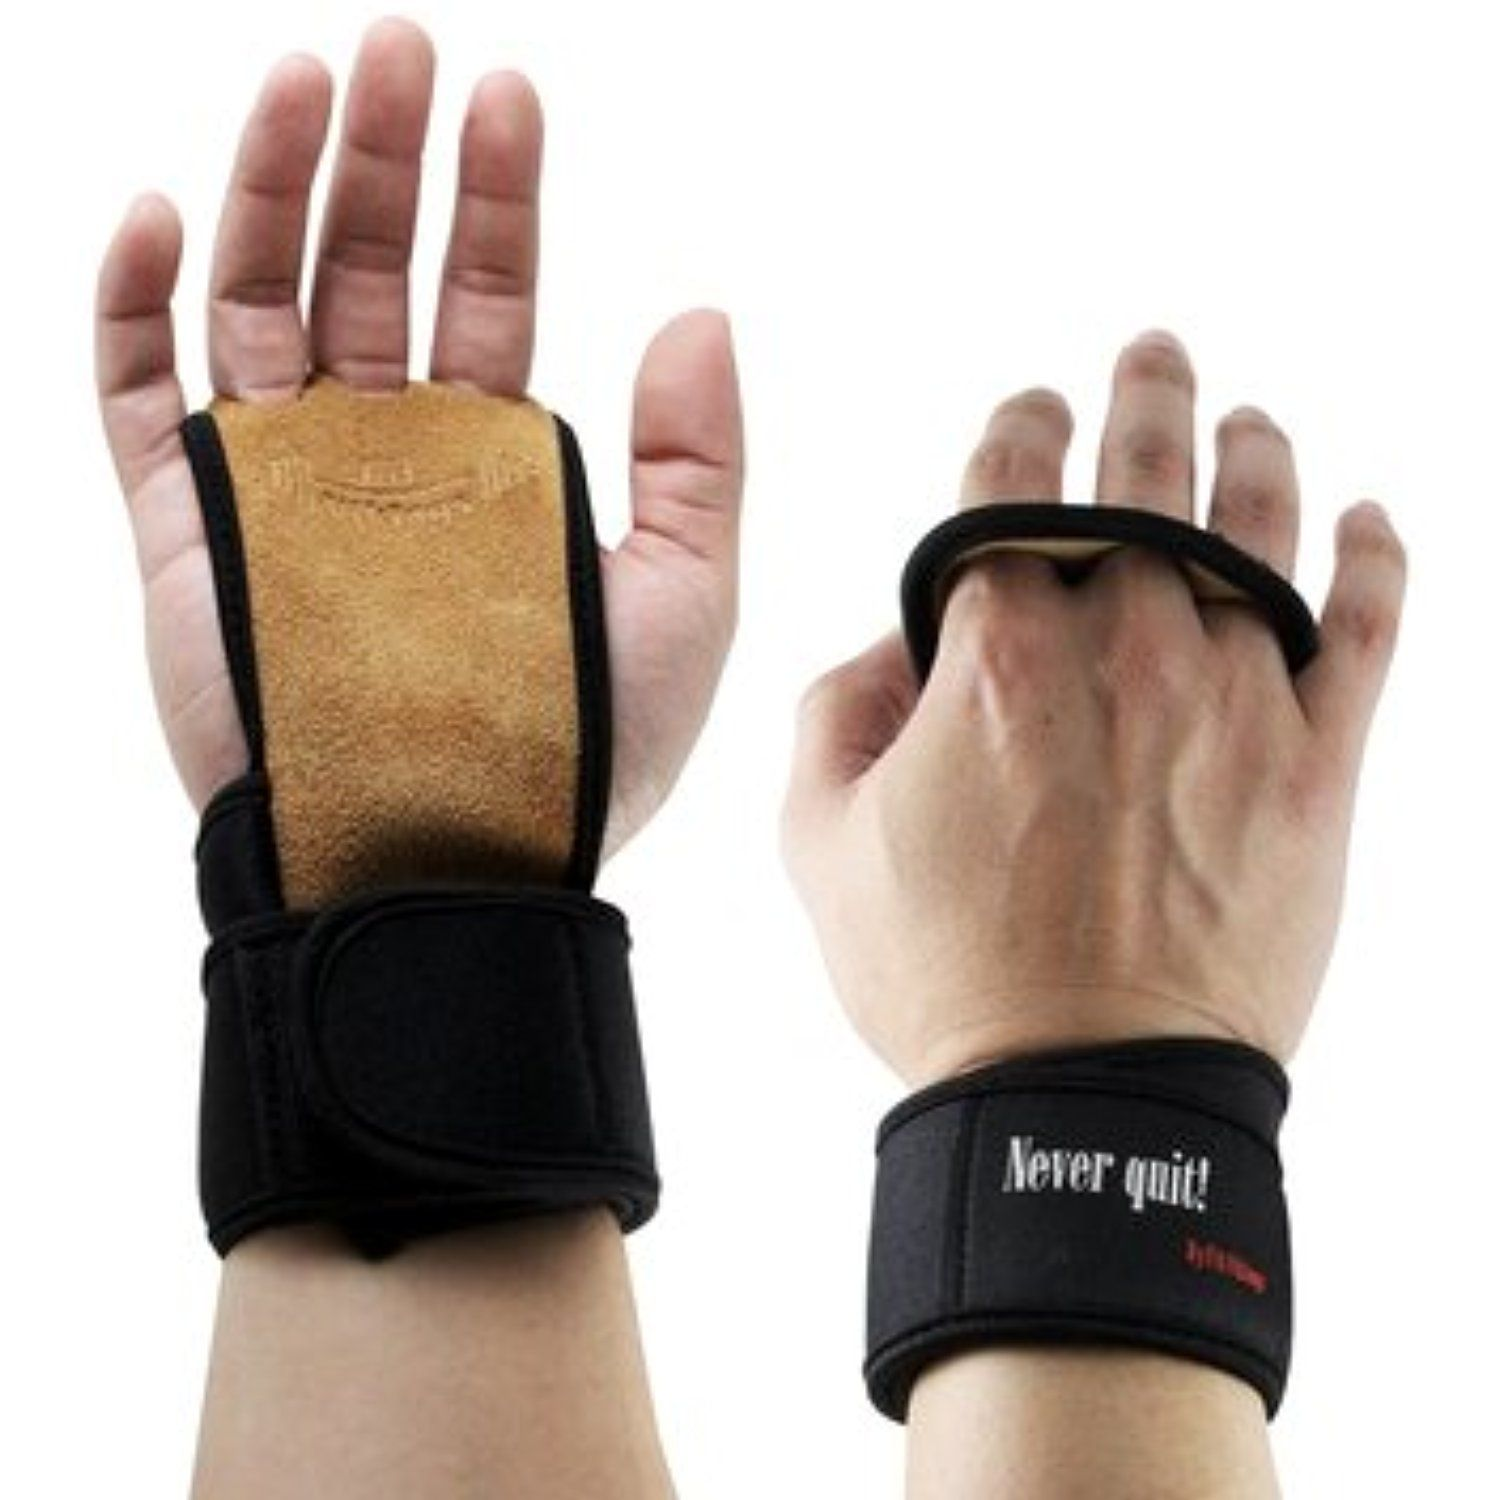 a506ecda3d Gym Gloves with Wrist Wraps - Hand Grips for Palm Protection - Workout  Equipment for Crossfit, Gym Workout,Weight lifting, Gymnastics, Biking -  Fits both ...